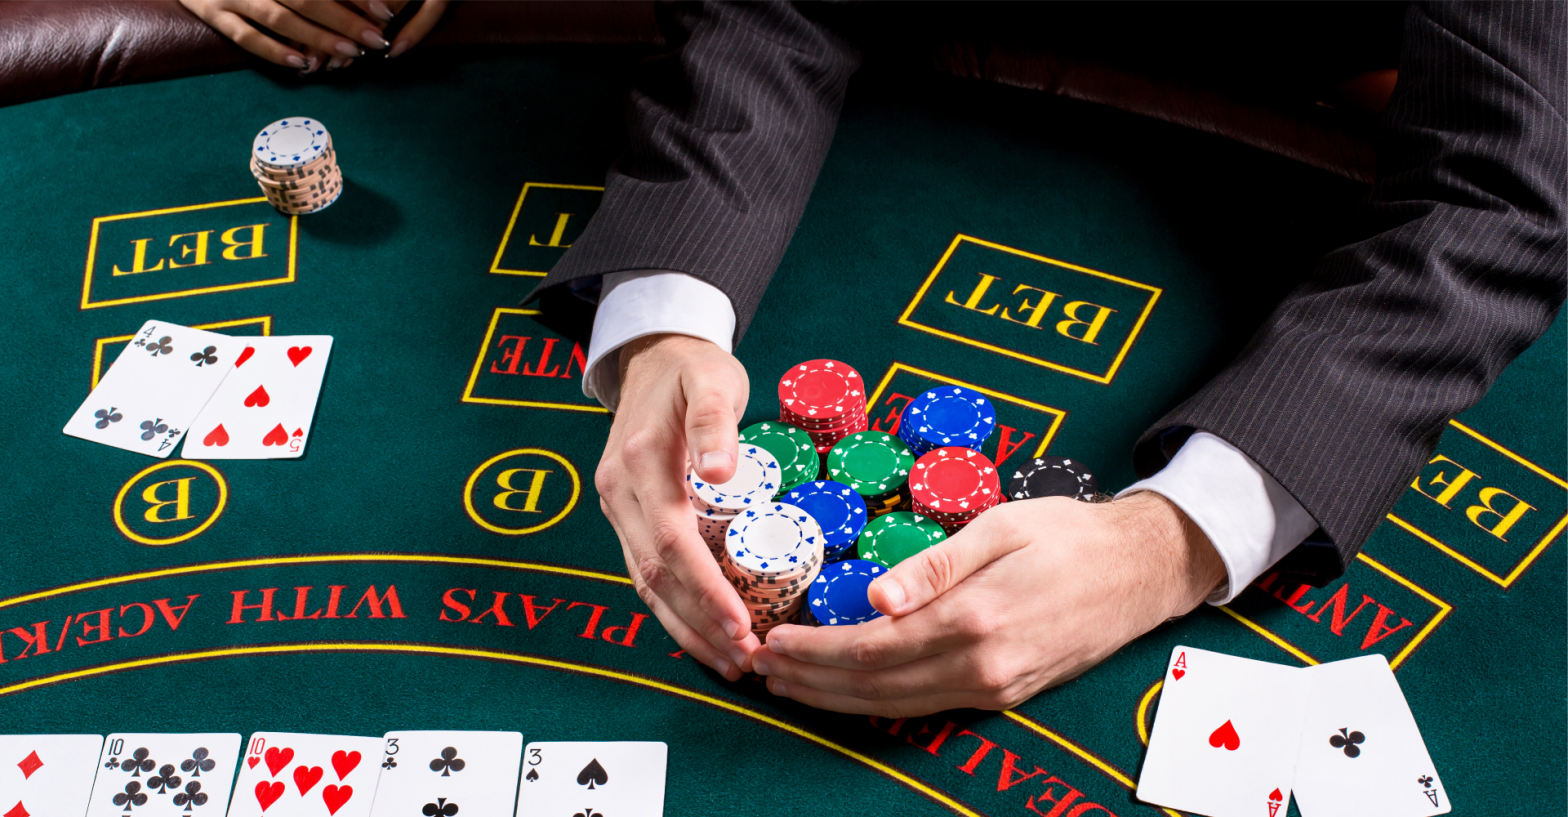 Steps Involved In Playing Poker Games